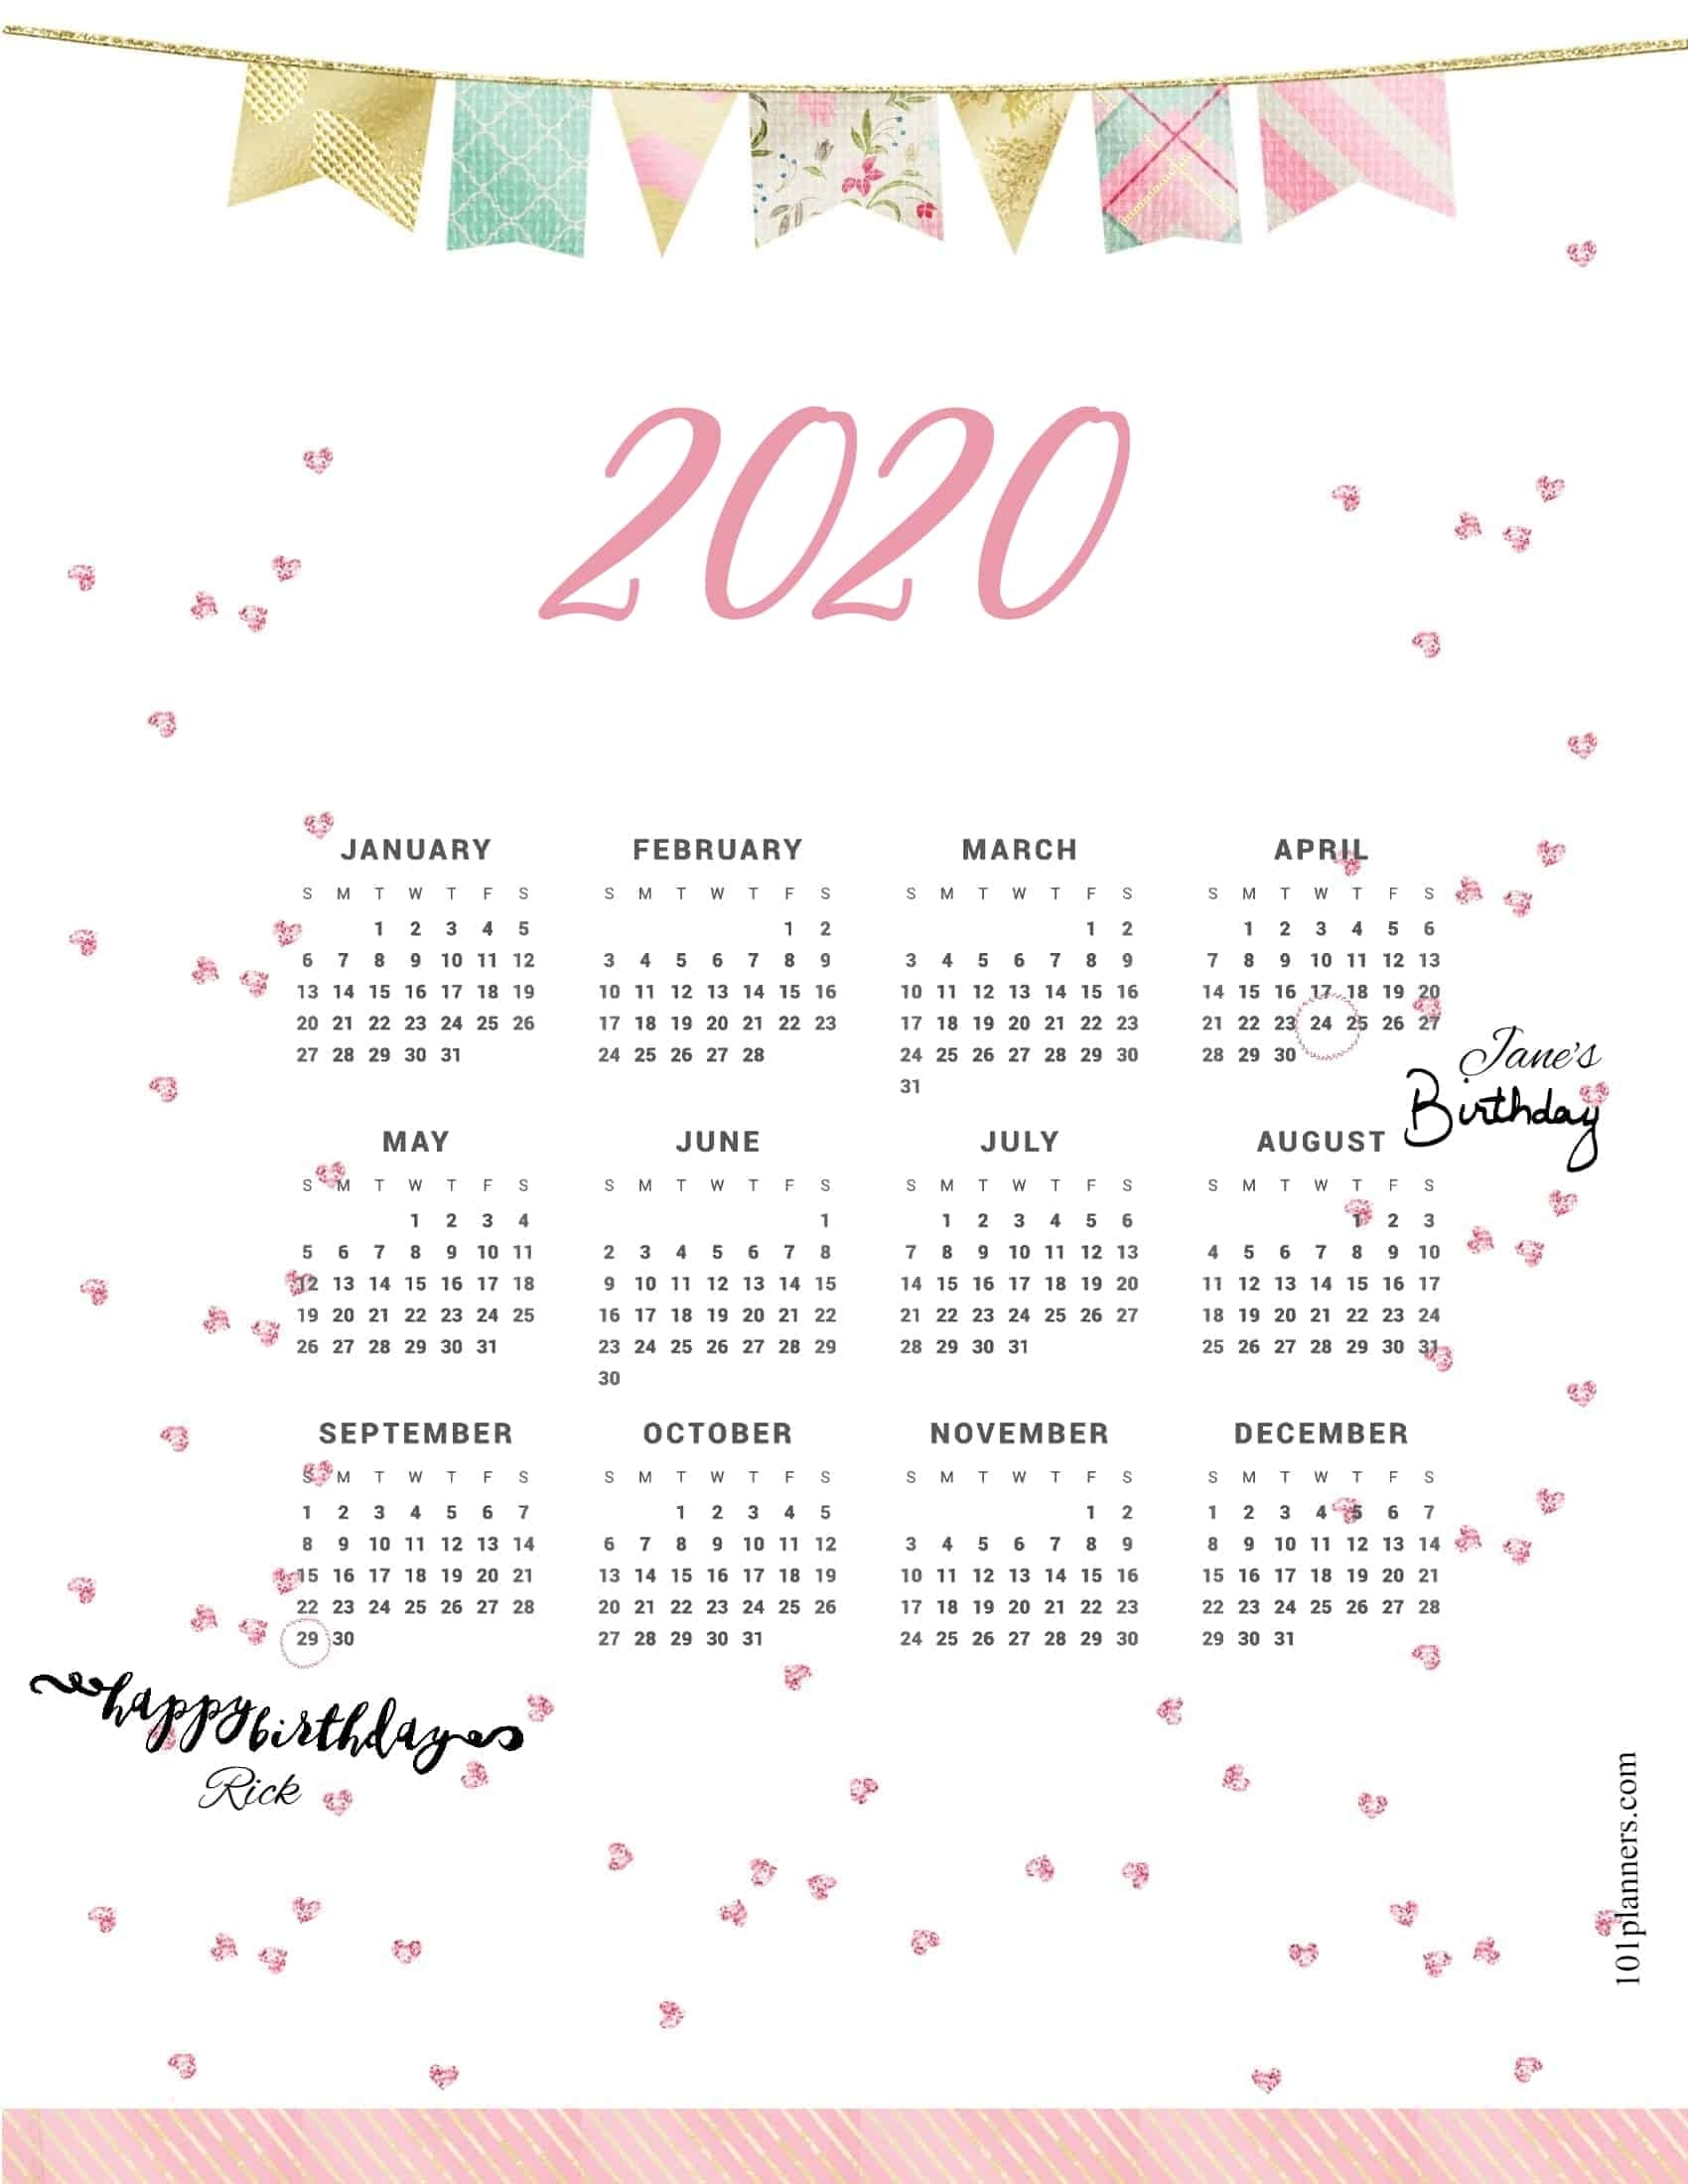 Free Printable 2020 Yearly Calendar At A Glance | 101 within Free 2020 Year At A Glance Calendar